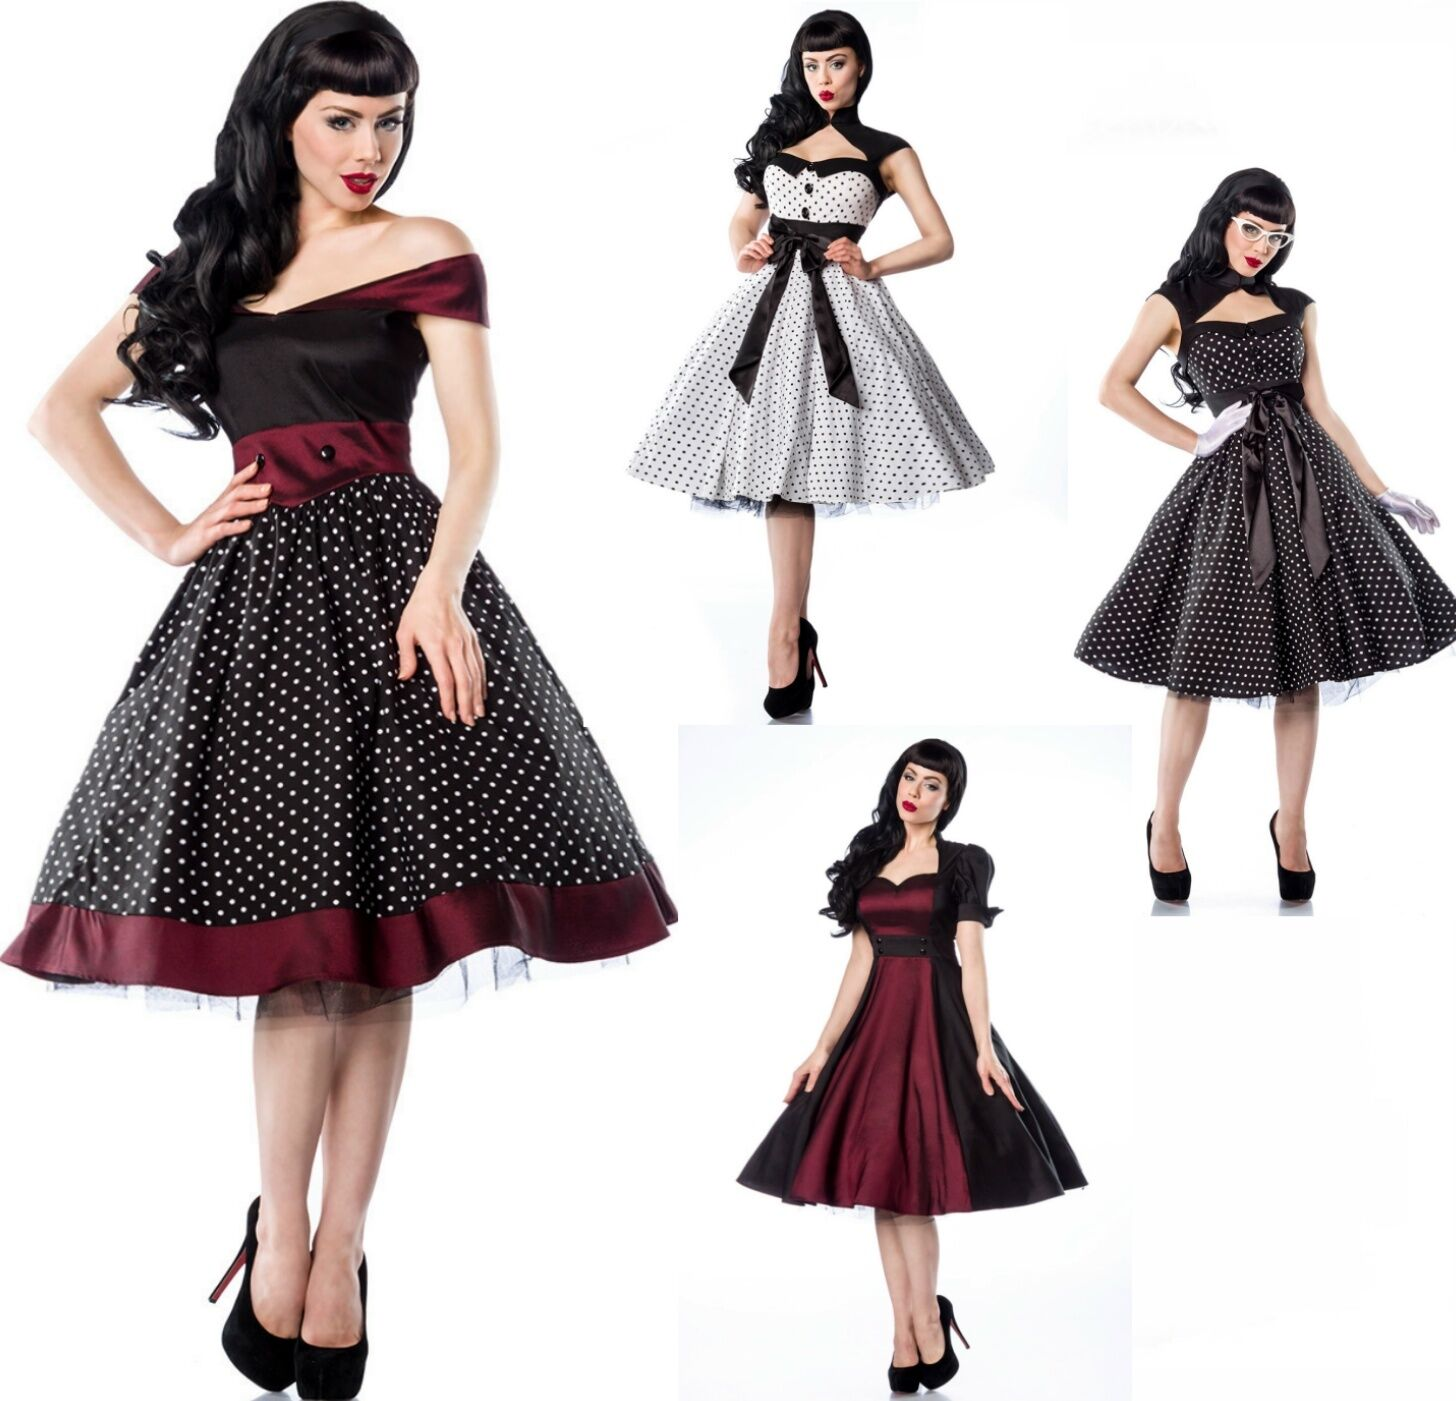 atx pin up vintage 50er kleid rockabilly tanzkleid petticoat rock n roll 36 46 ebay. Black Bedroom Furniture Sets. Home Design Ideas